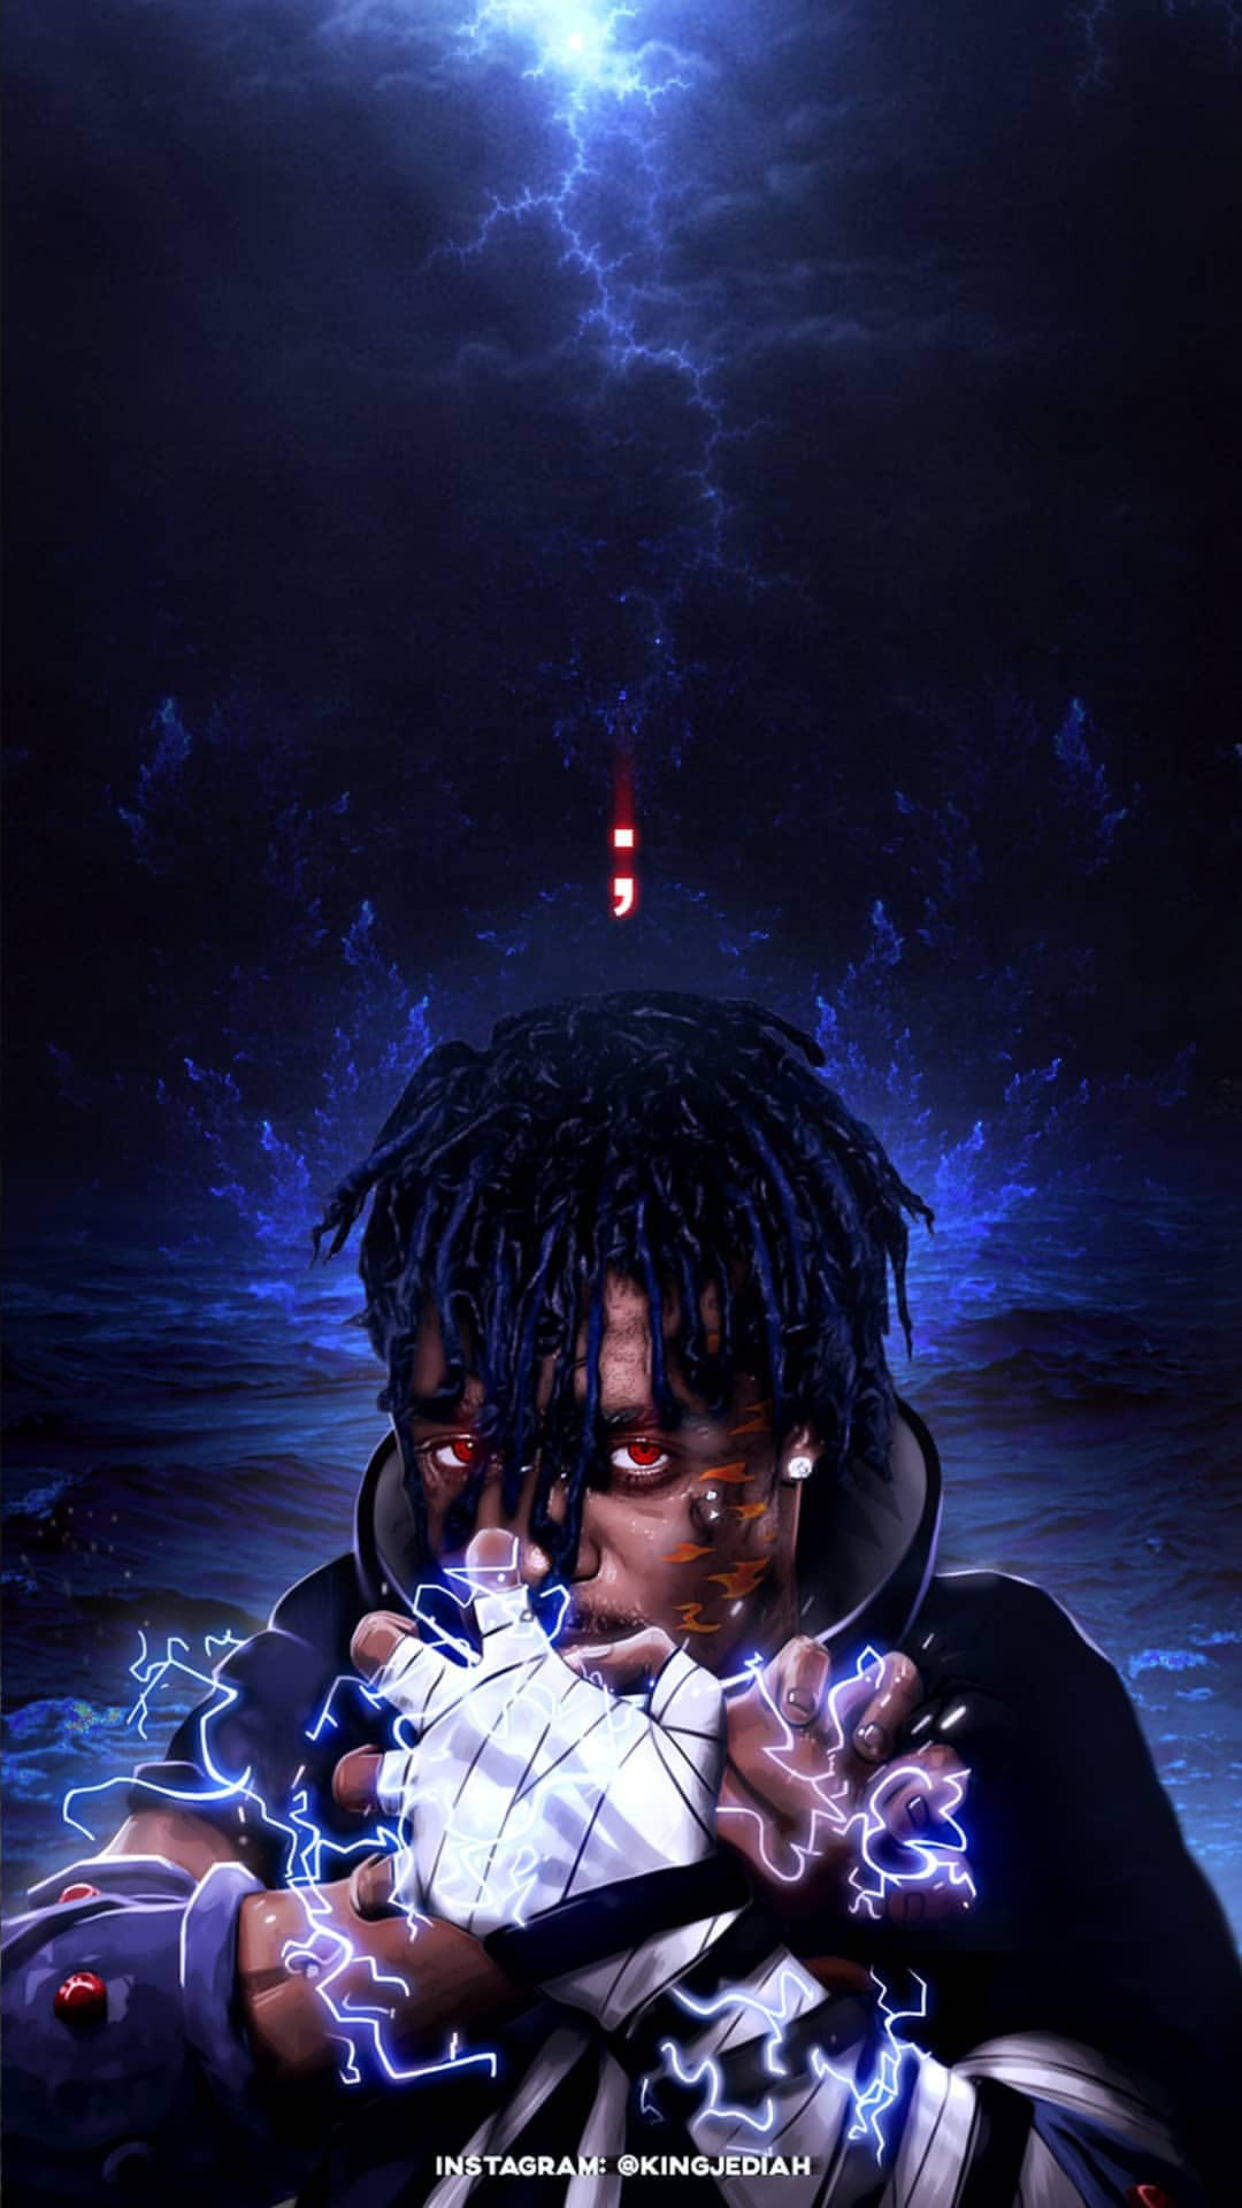 Pin On Rep Lil uzi vert performs at rolling loud #iphone11wallpaper #liluzivert #luv #uzivert #uzivertwallpaper #backgrounds #backgroundart #wallpaperart #music #culture #dope #uzi #androidwallpaper. pinterest